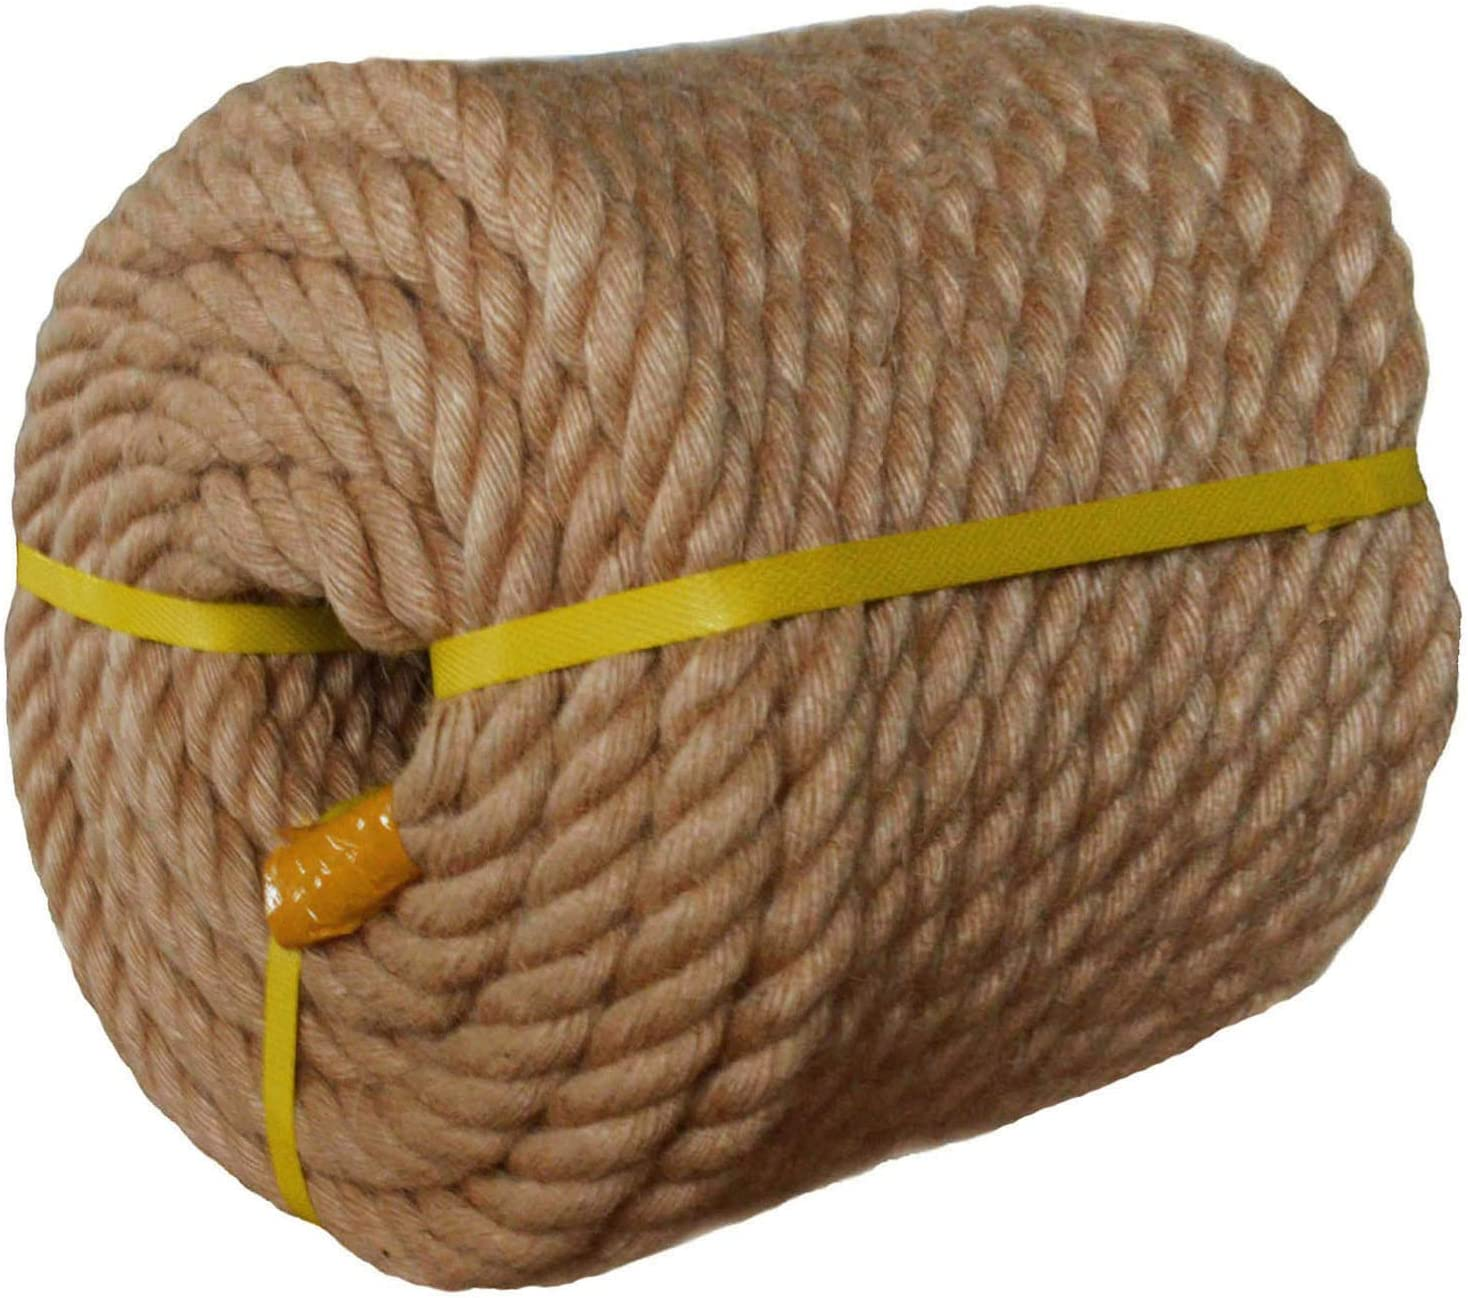 Twisted Manila Rope Jute 1 in New products world's highest quality popular ft Thick Baltimore Mall 100 Natural Hemp x